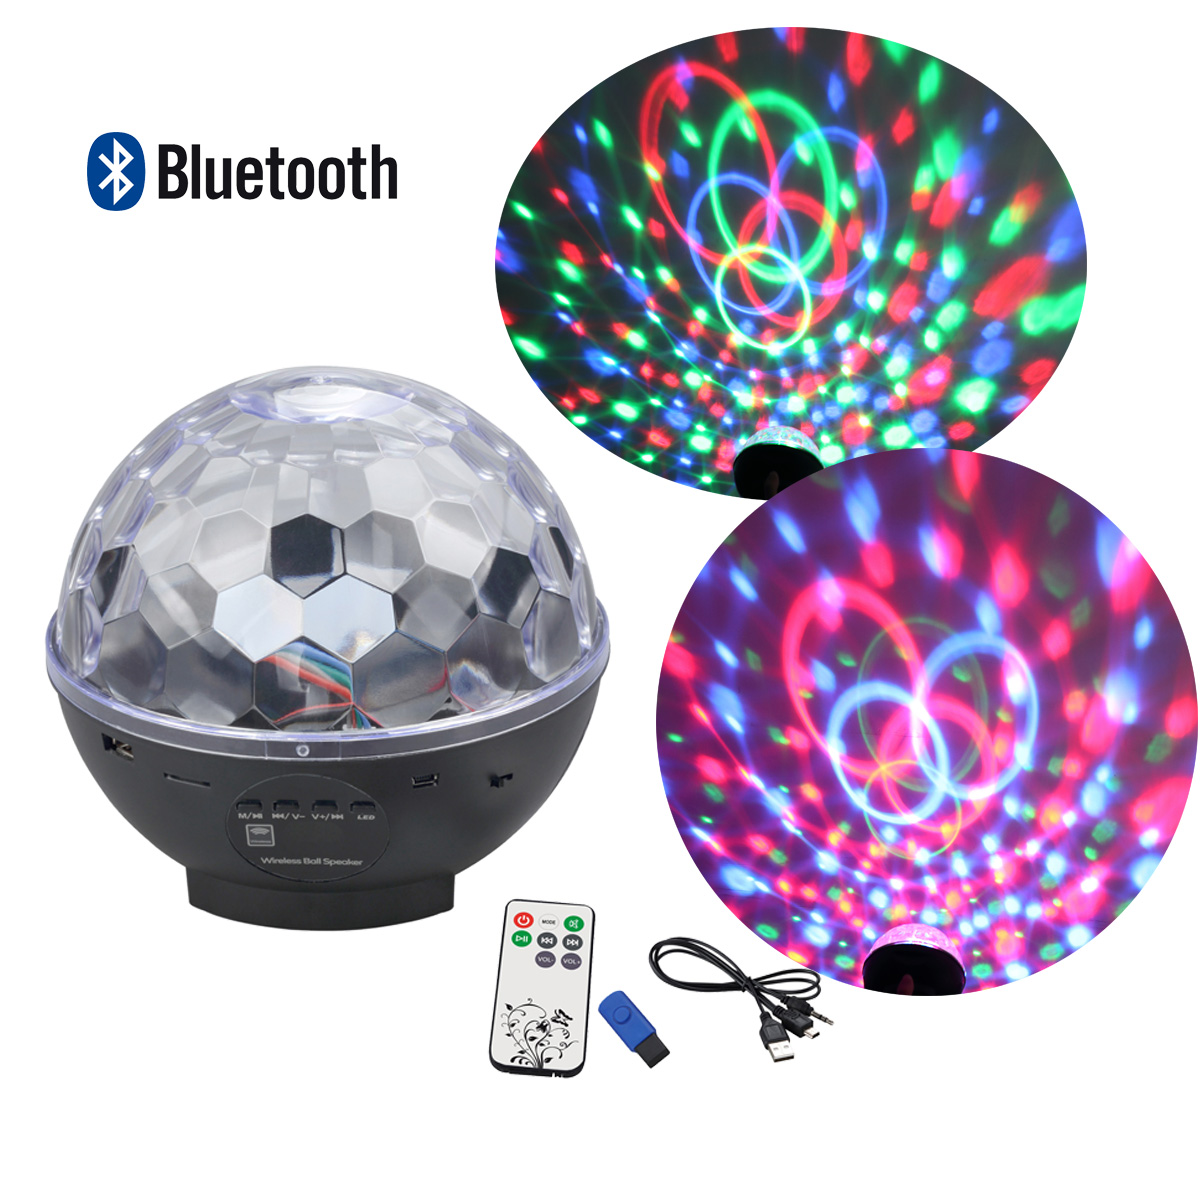 Besmall Bluetooth MP3 RGB LED Crystal Magic Ball Speaker Rotating Strobe Disco Stage Christmas Ball Light with Remote... by Besmall